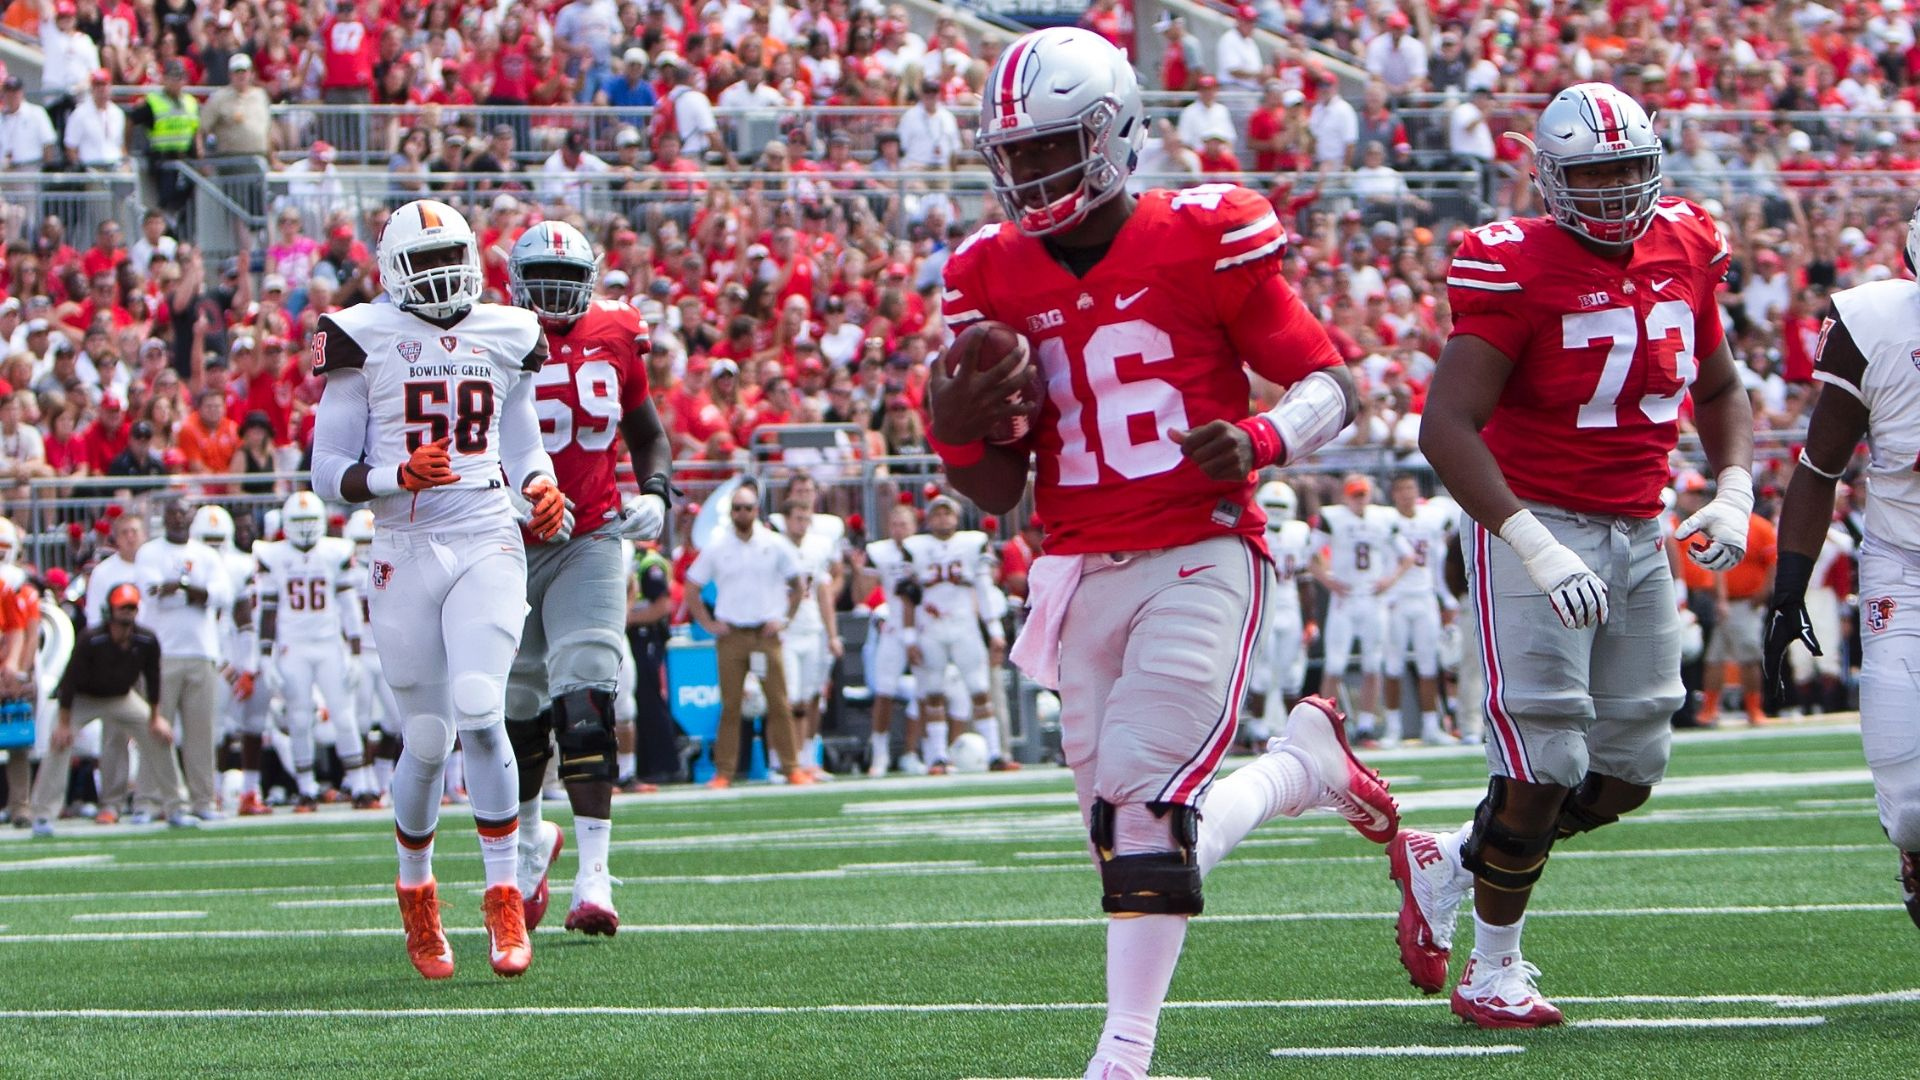 J.T. Barrett's seven touchdown day